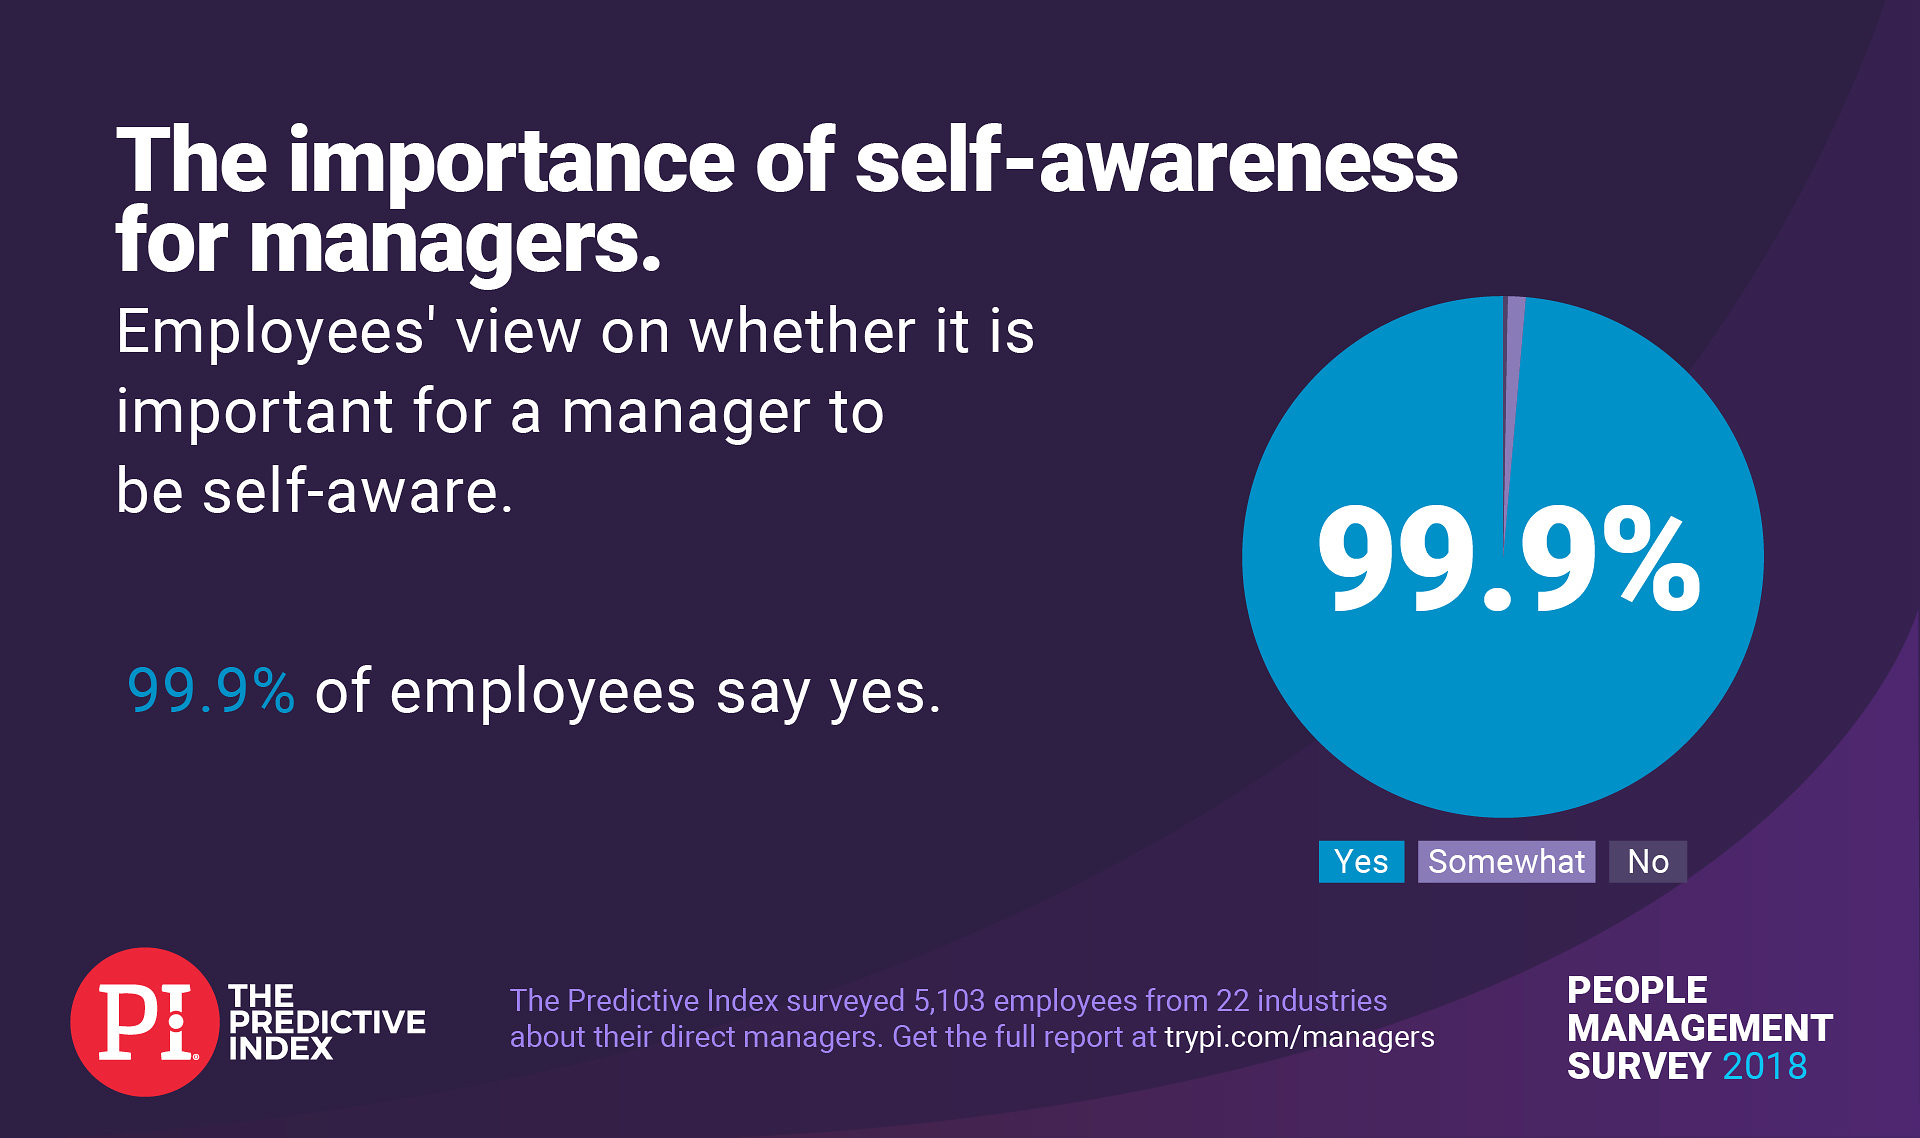 Pie chart showing the importance of self-awareness as a manager trait